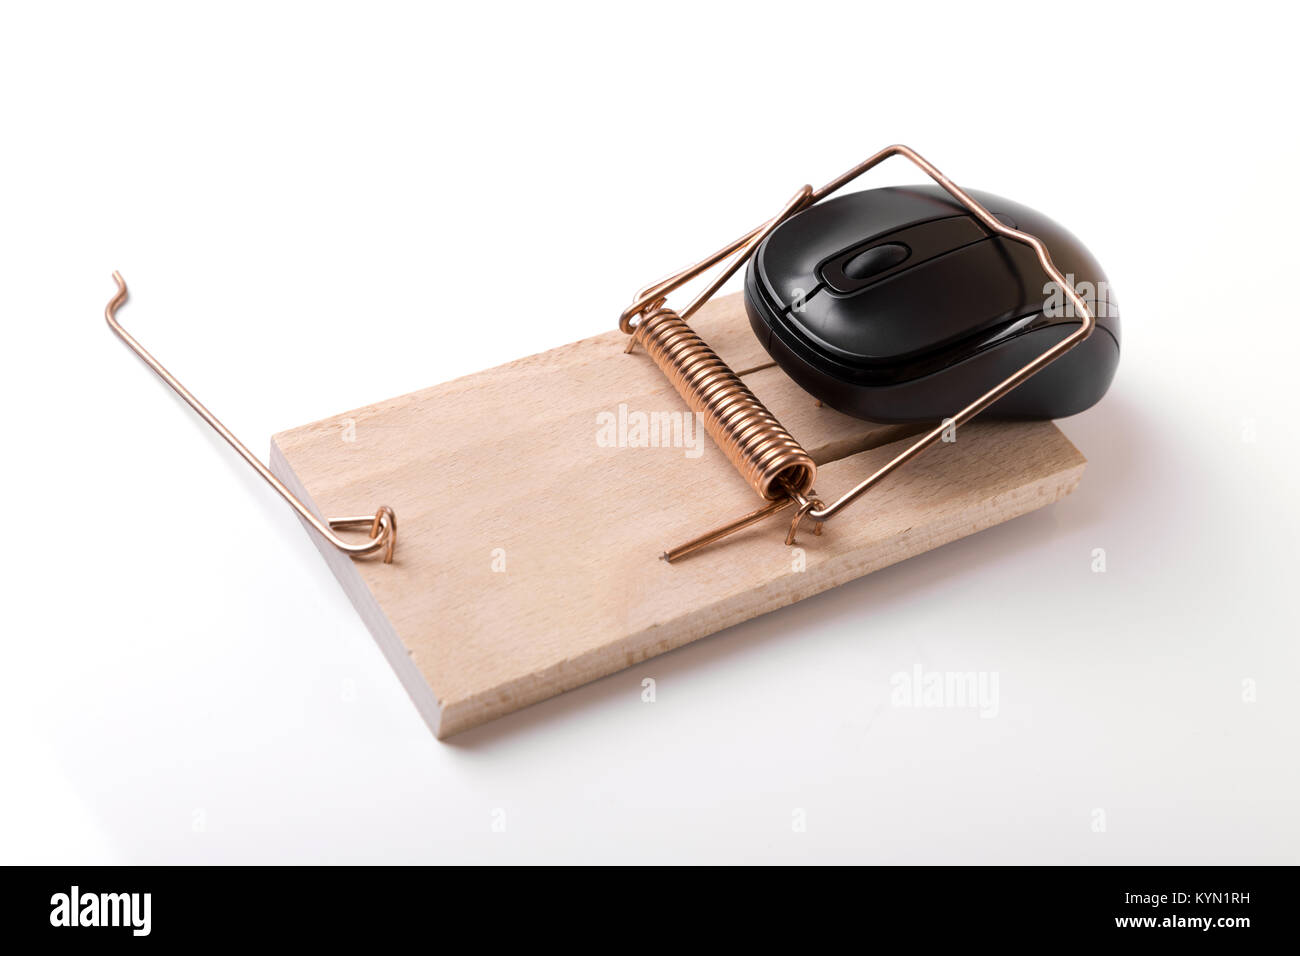 computer mouse in mousetrap - censored internet and web crime concept - Stock Image